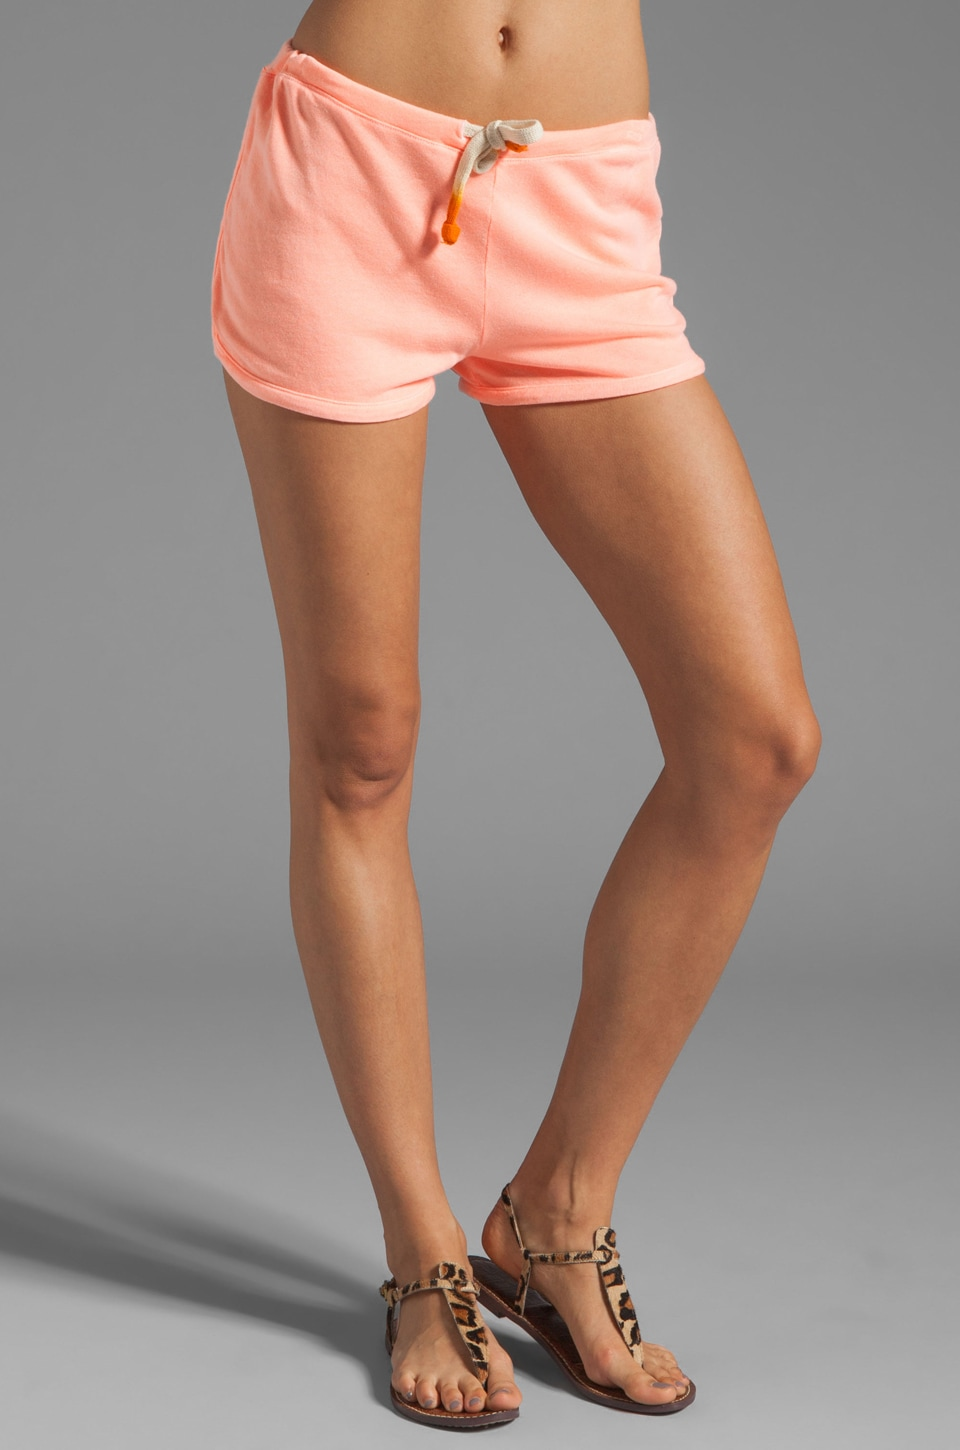 SUNDRY Light Terry Shorts in Neon Heat